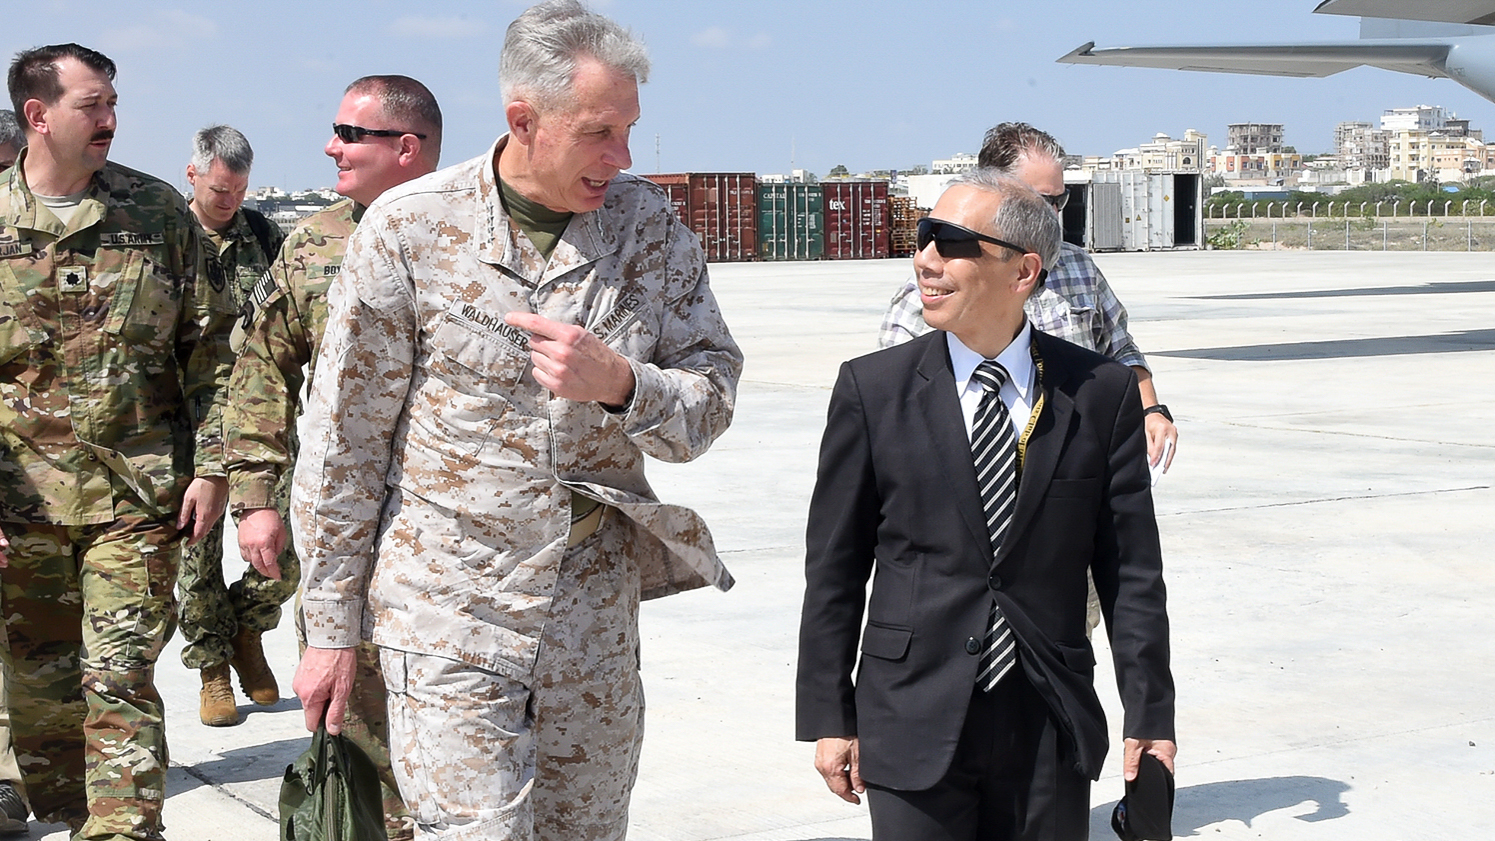 181127-N-PK218-1034